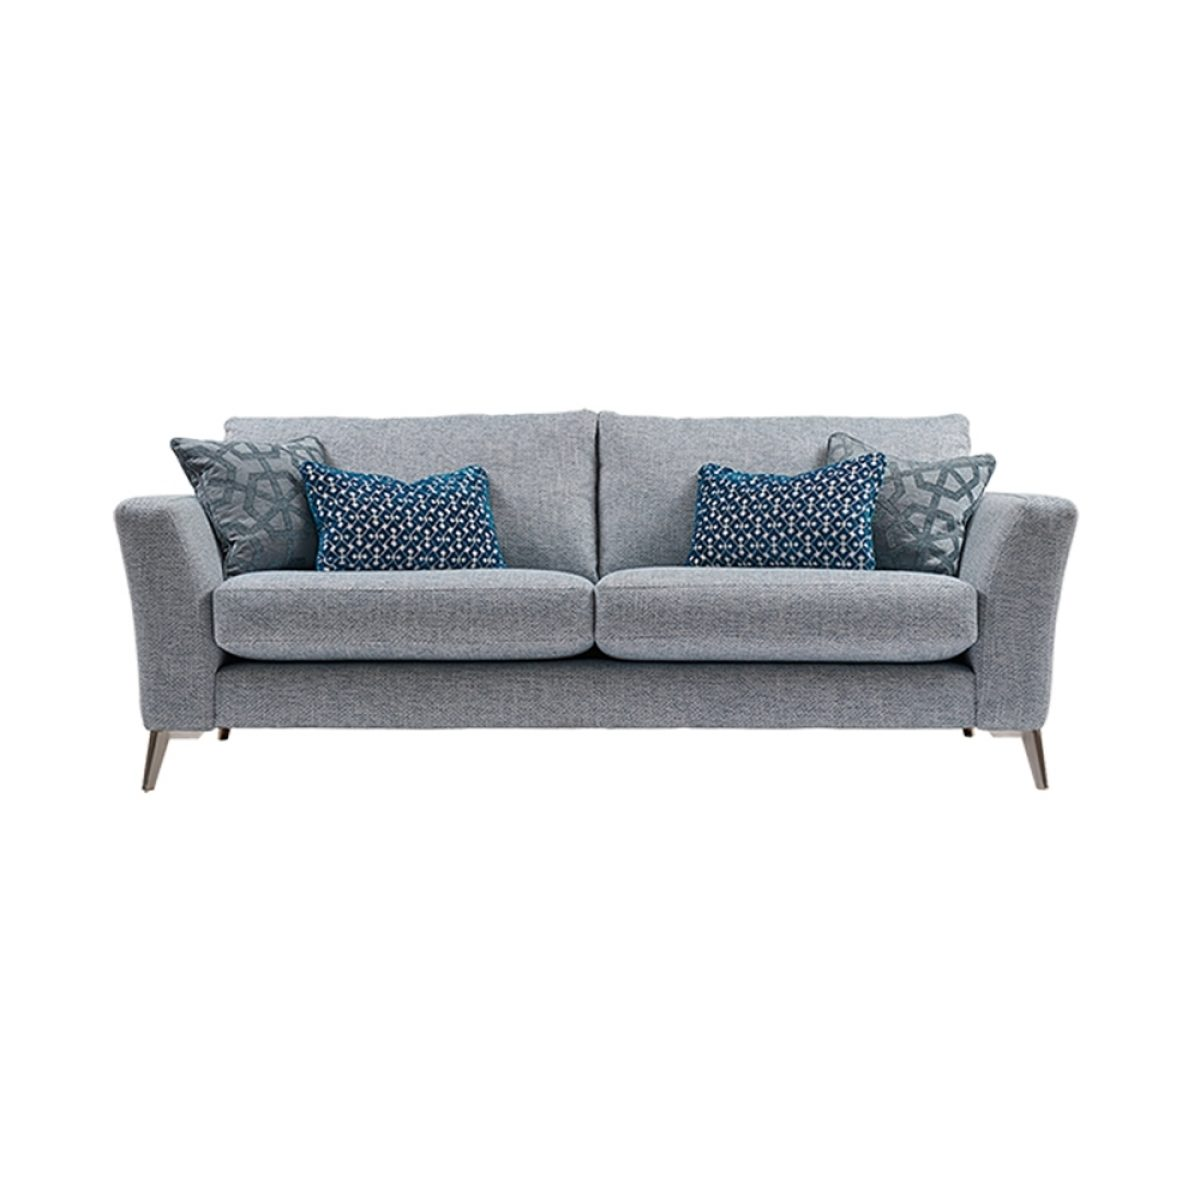 Ashwood designs felix 3str sofa 1